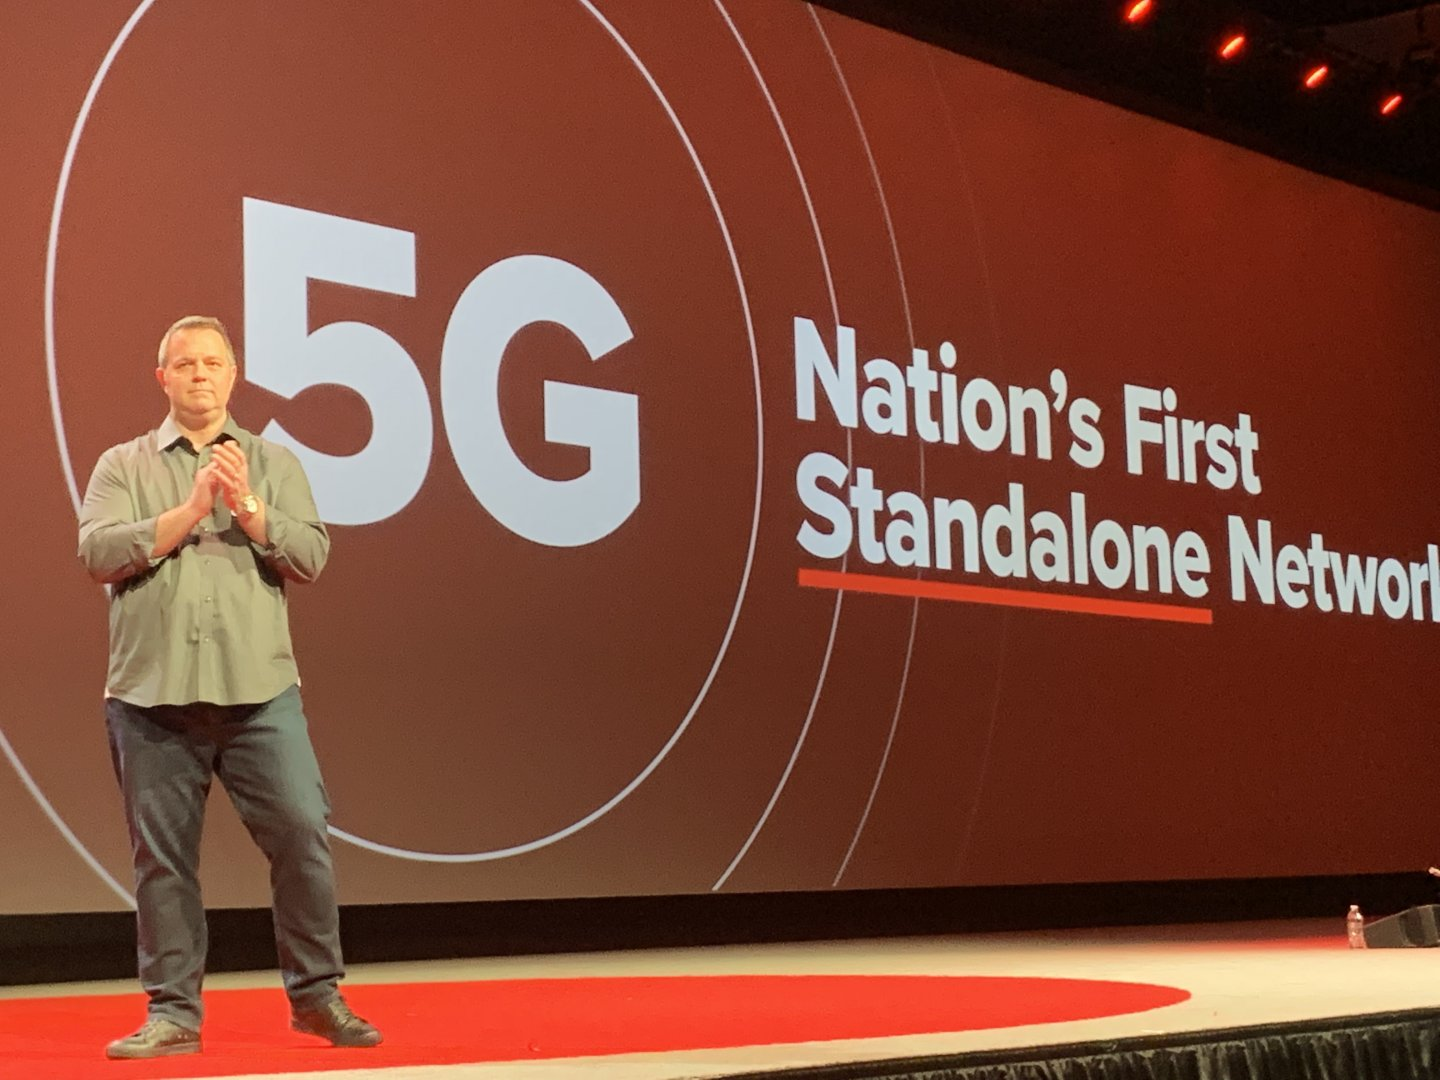 man on stage talking about 5g